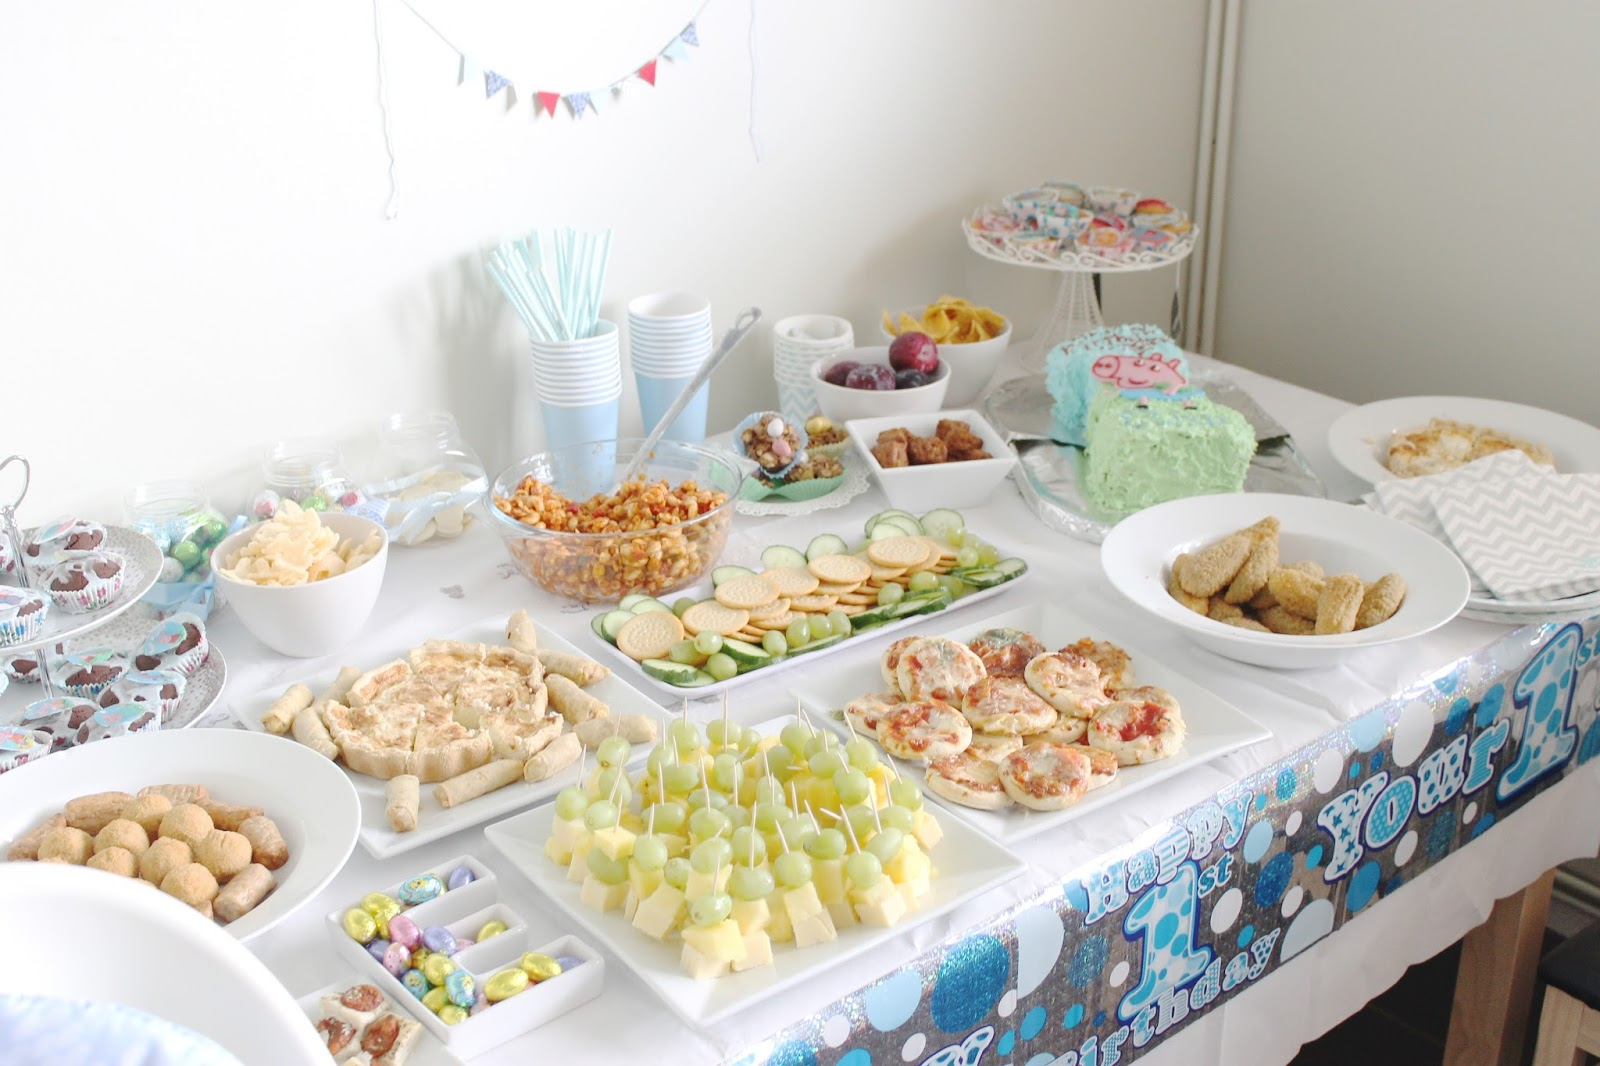 ethans 1st birthday: the party & decor! - bump to baby & beyond blog